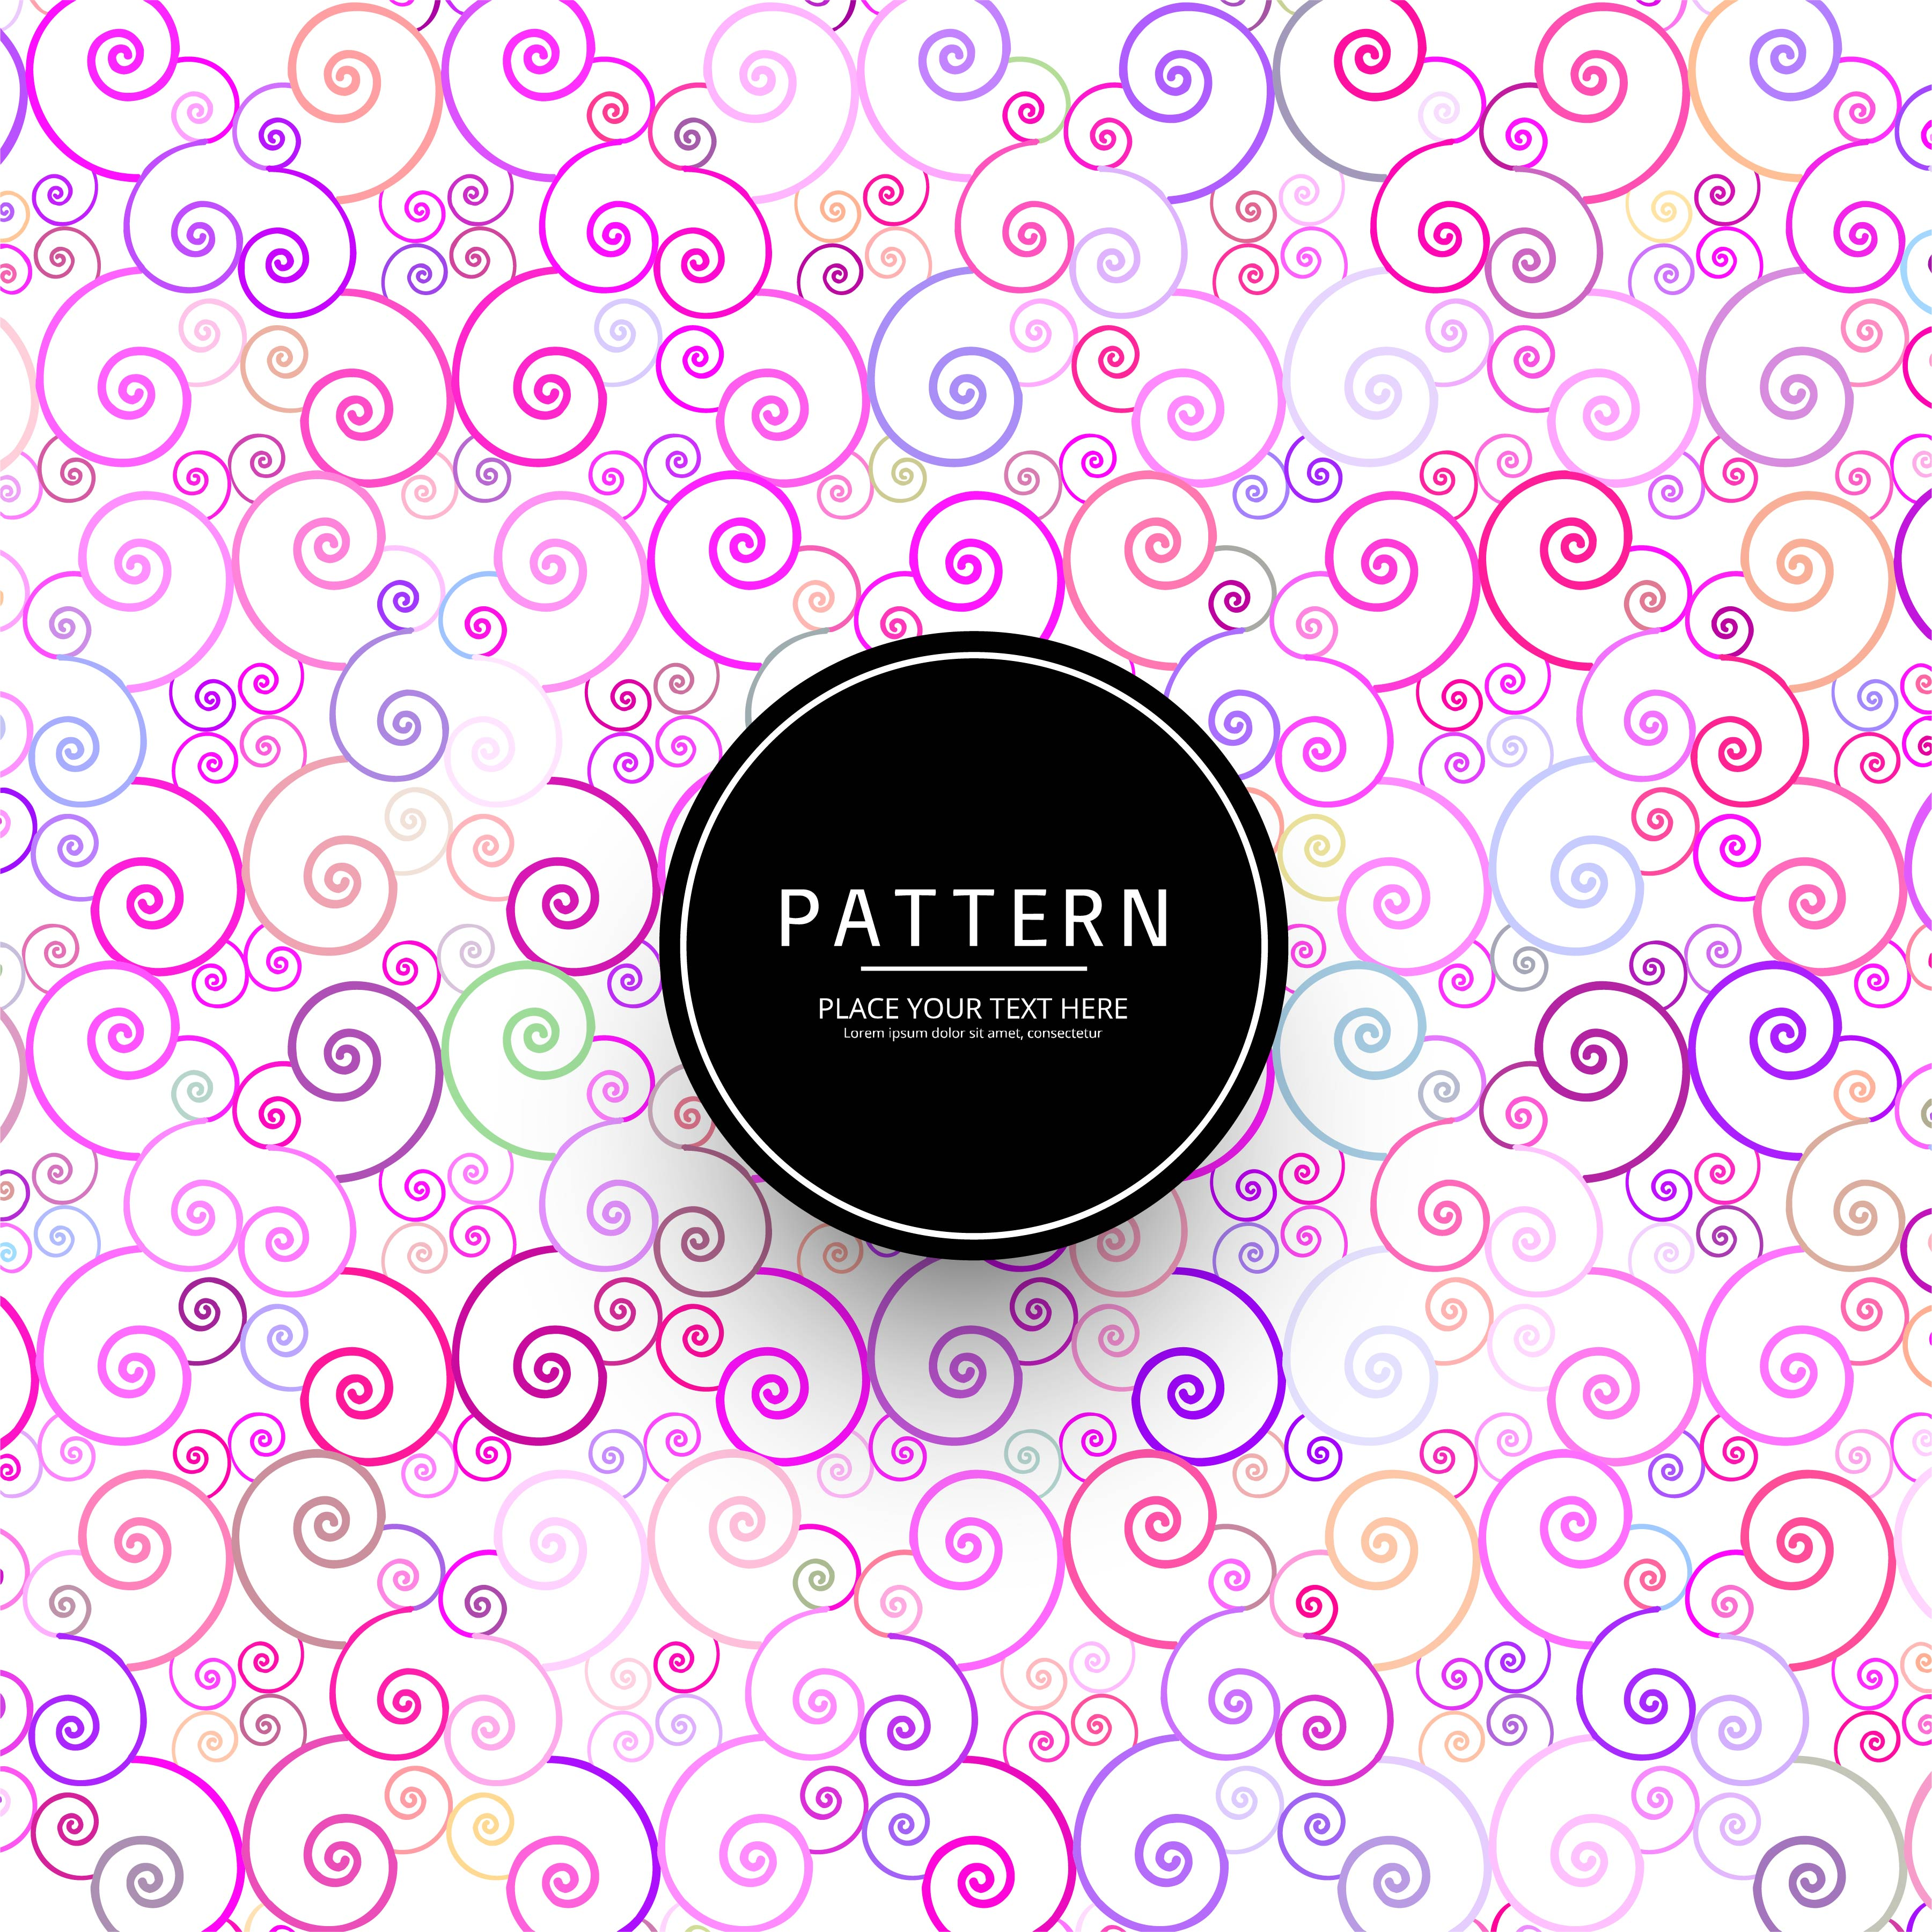 Abstract Elegant Colorful Floral Pattern Background Download